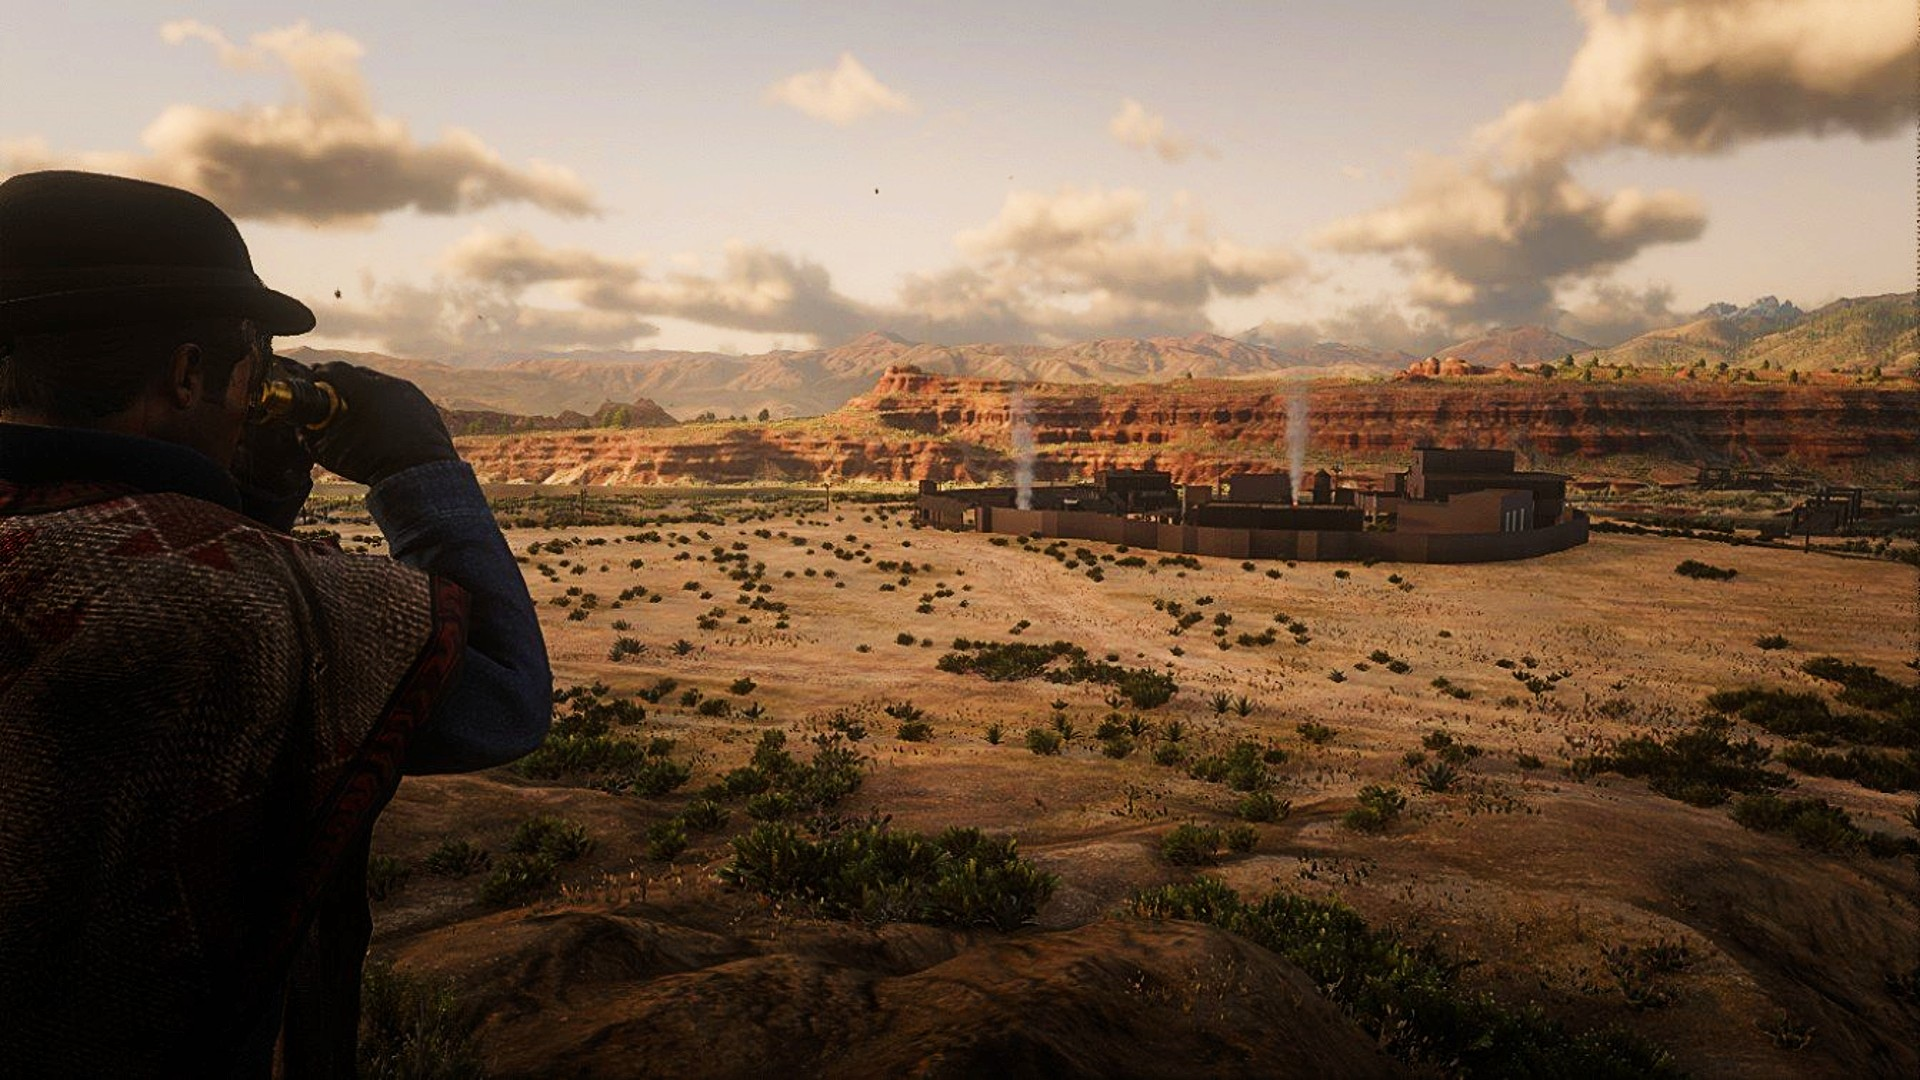 A Red Dead Redemption 2 modder is recreating Mexico from the original game